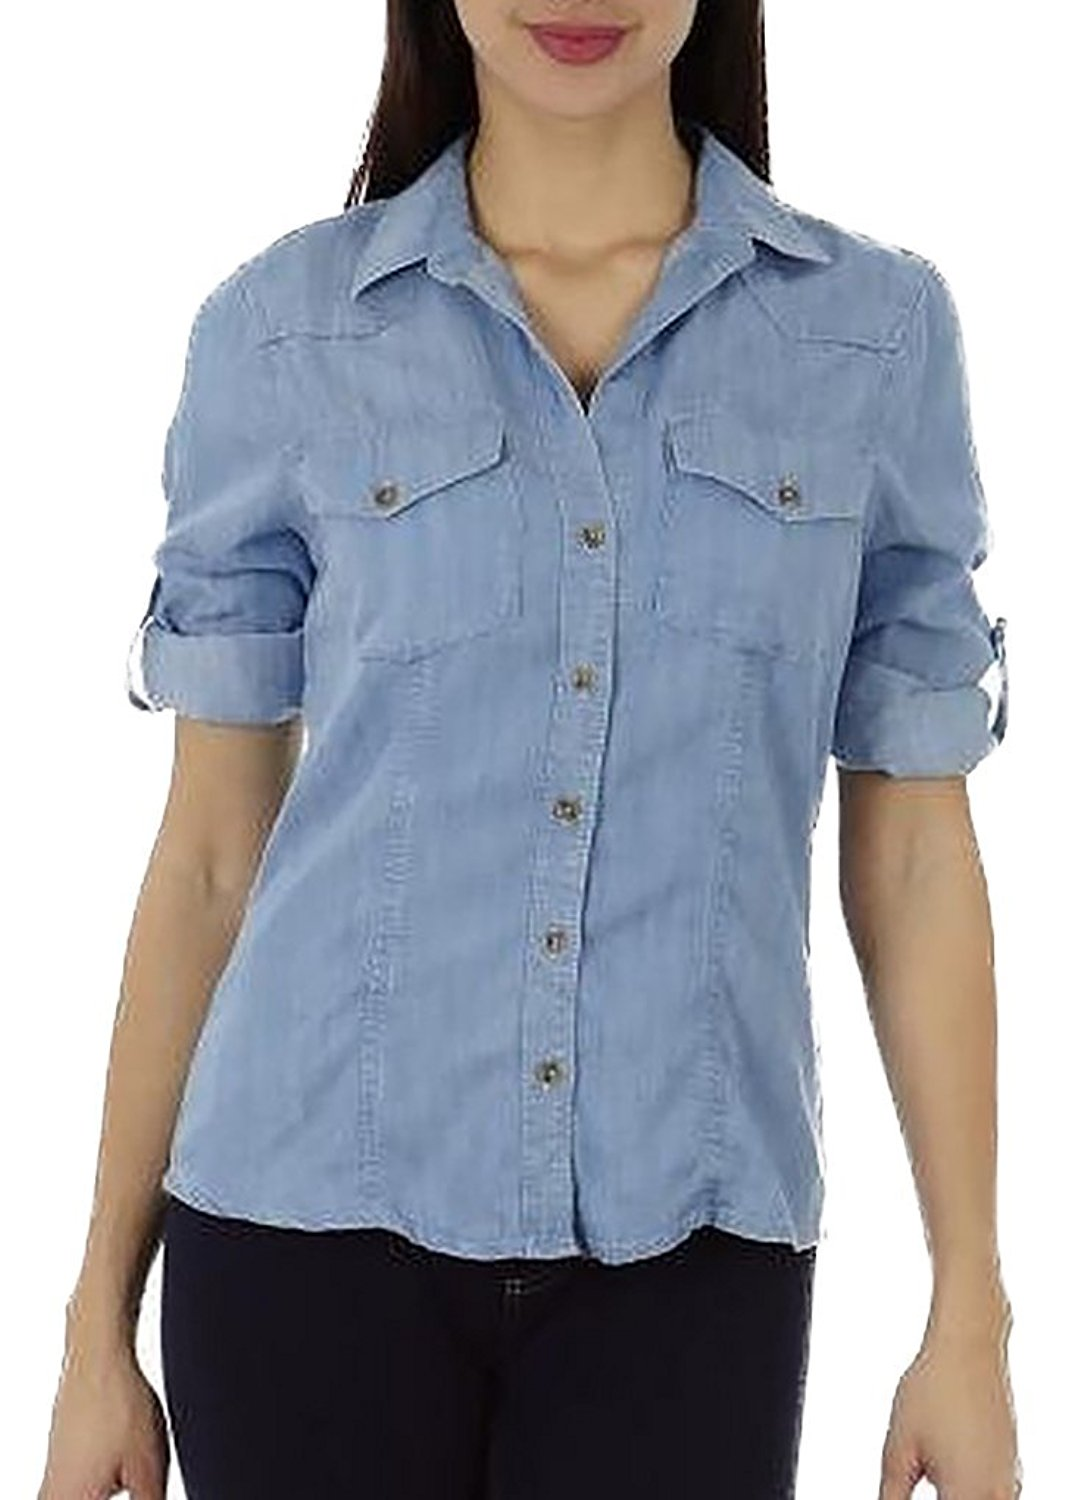 Dinamit Juniors Tailored Tencel Denim Safari Button Up Shirt - Home Goods Galore